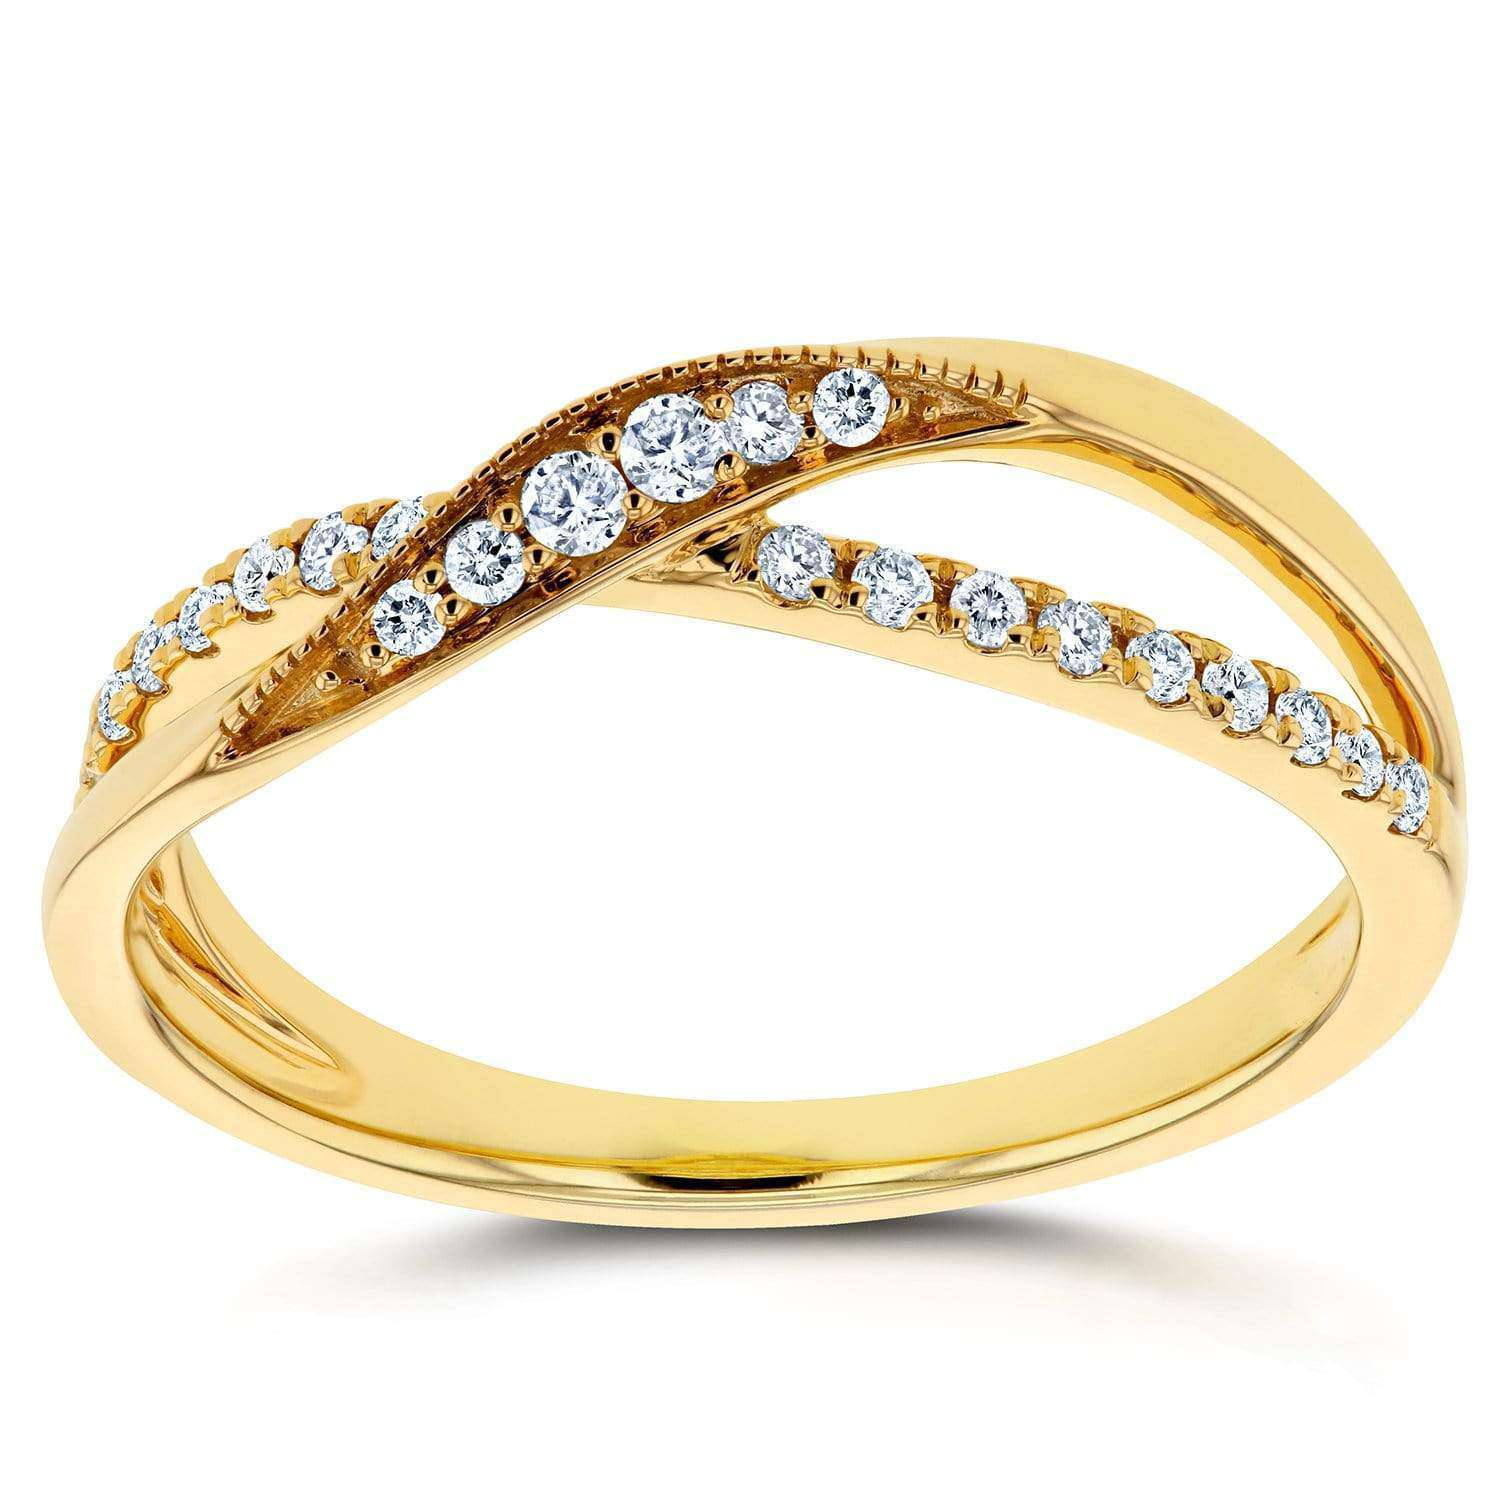 Top Diamond Fashion Ring 1/5 carat (ctw) in 10K Yellow Gold - 4